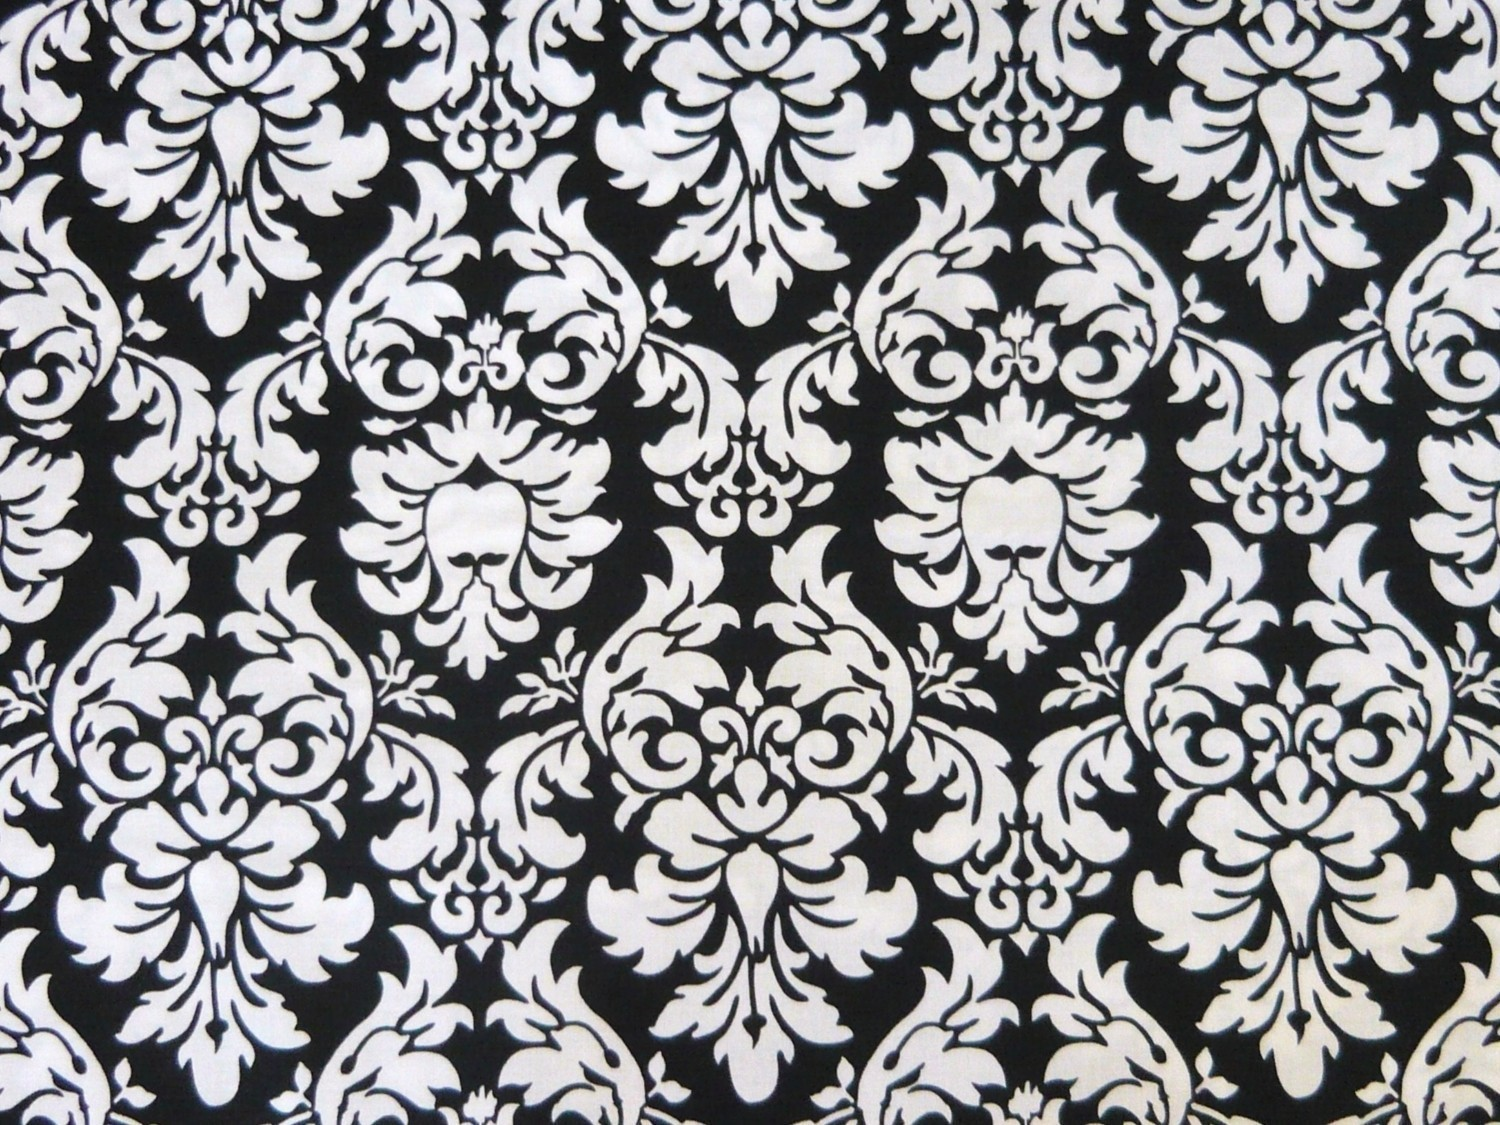 Black and white damask wallpaper 14 background for Black white damask wallpaper mural